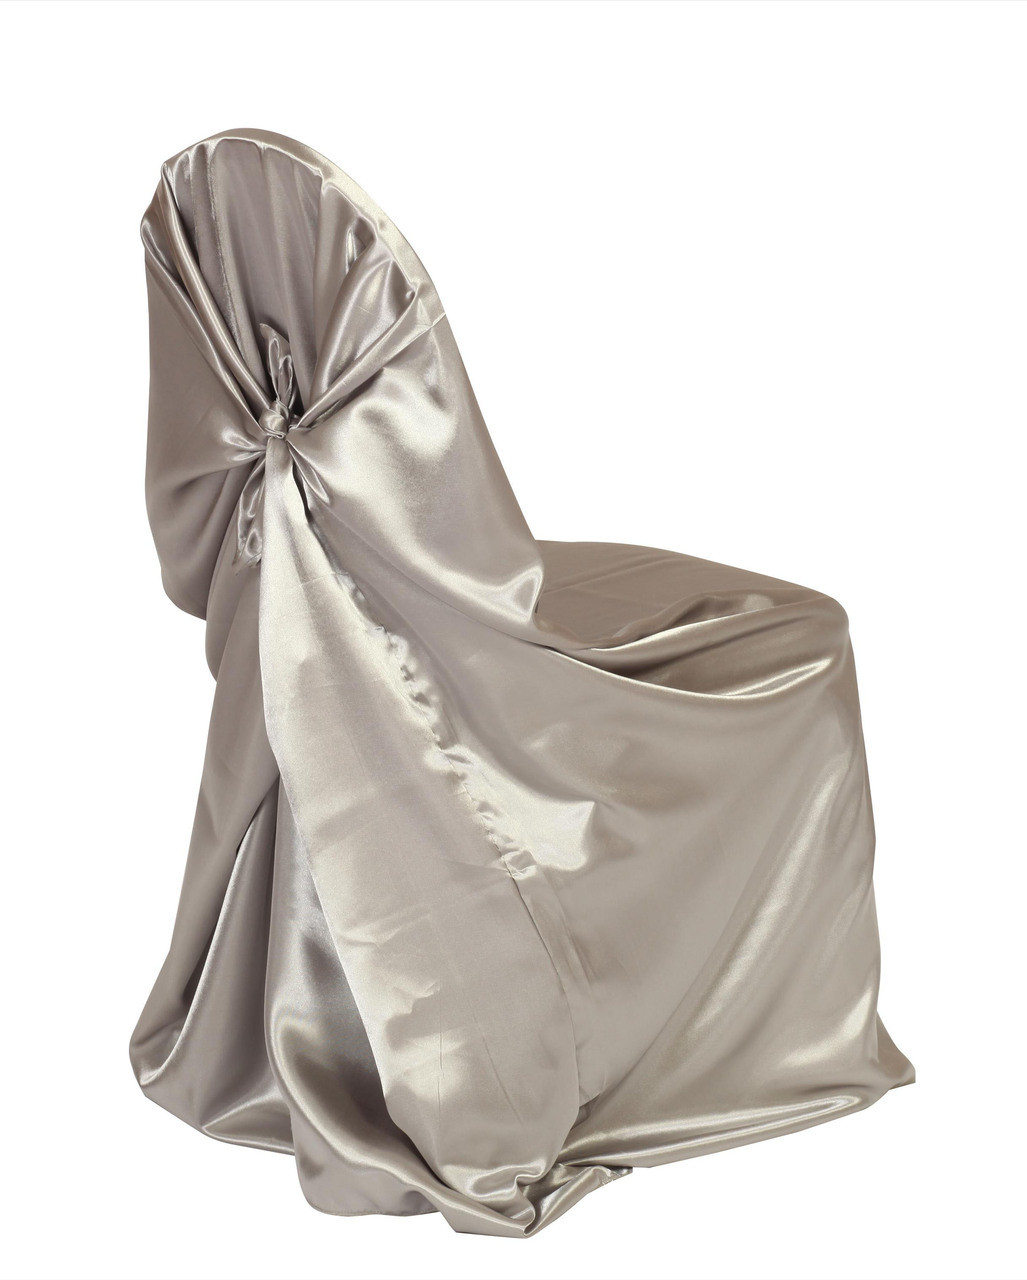 chair covers universal wheel chairs for sale satin self tie cover dark silver platinum your